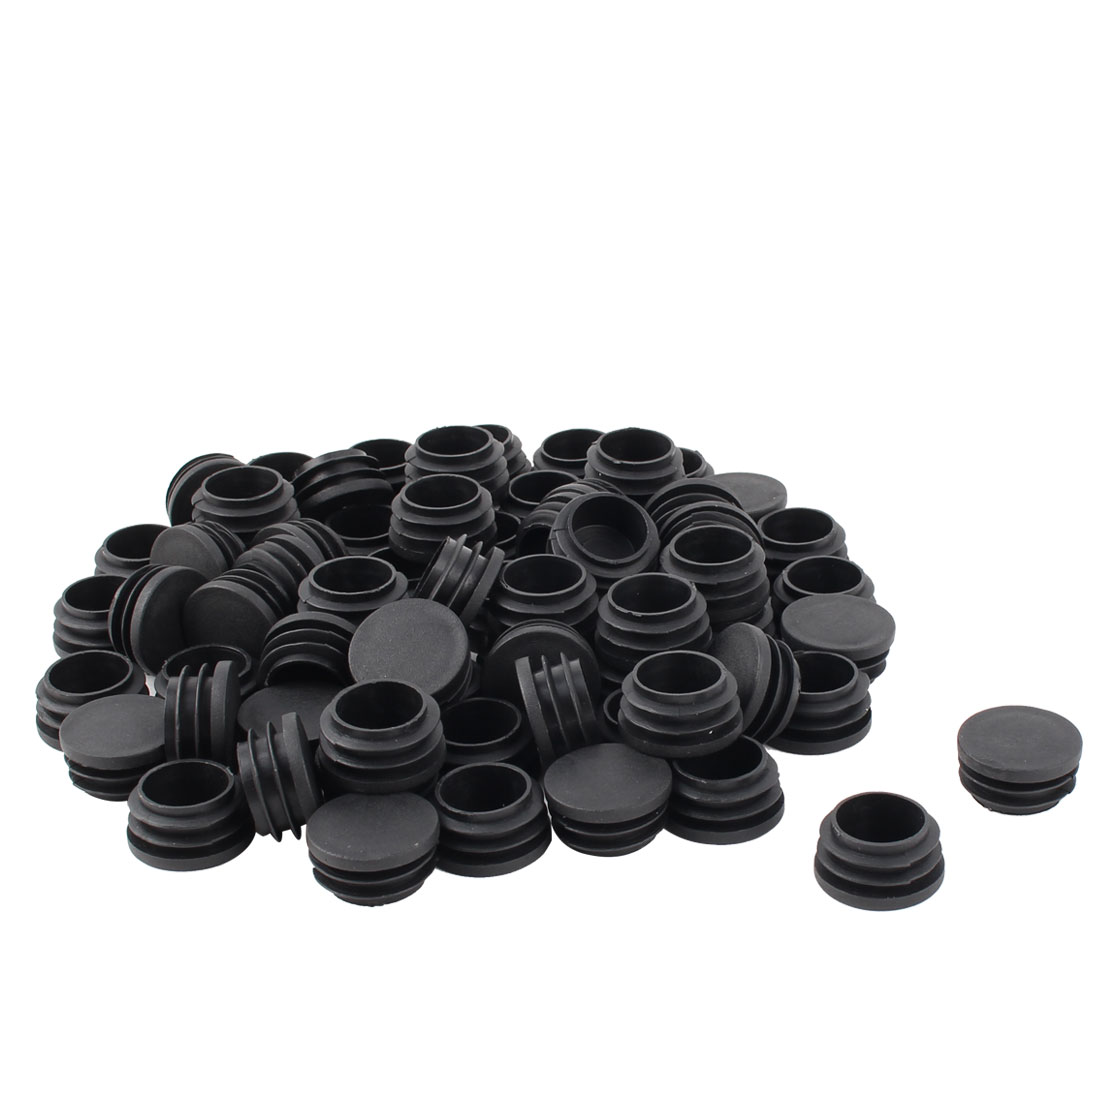 Furniture Desk Chair Plastic Round Tube Insert Pipe Cover Black 32mm Dia 70pcs